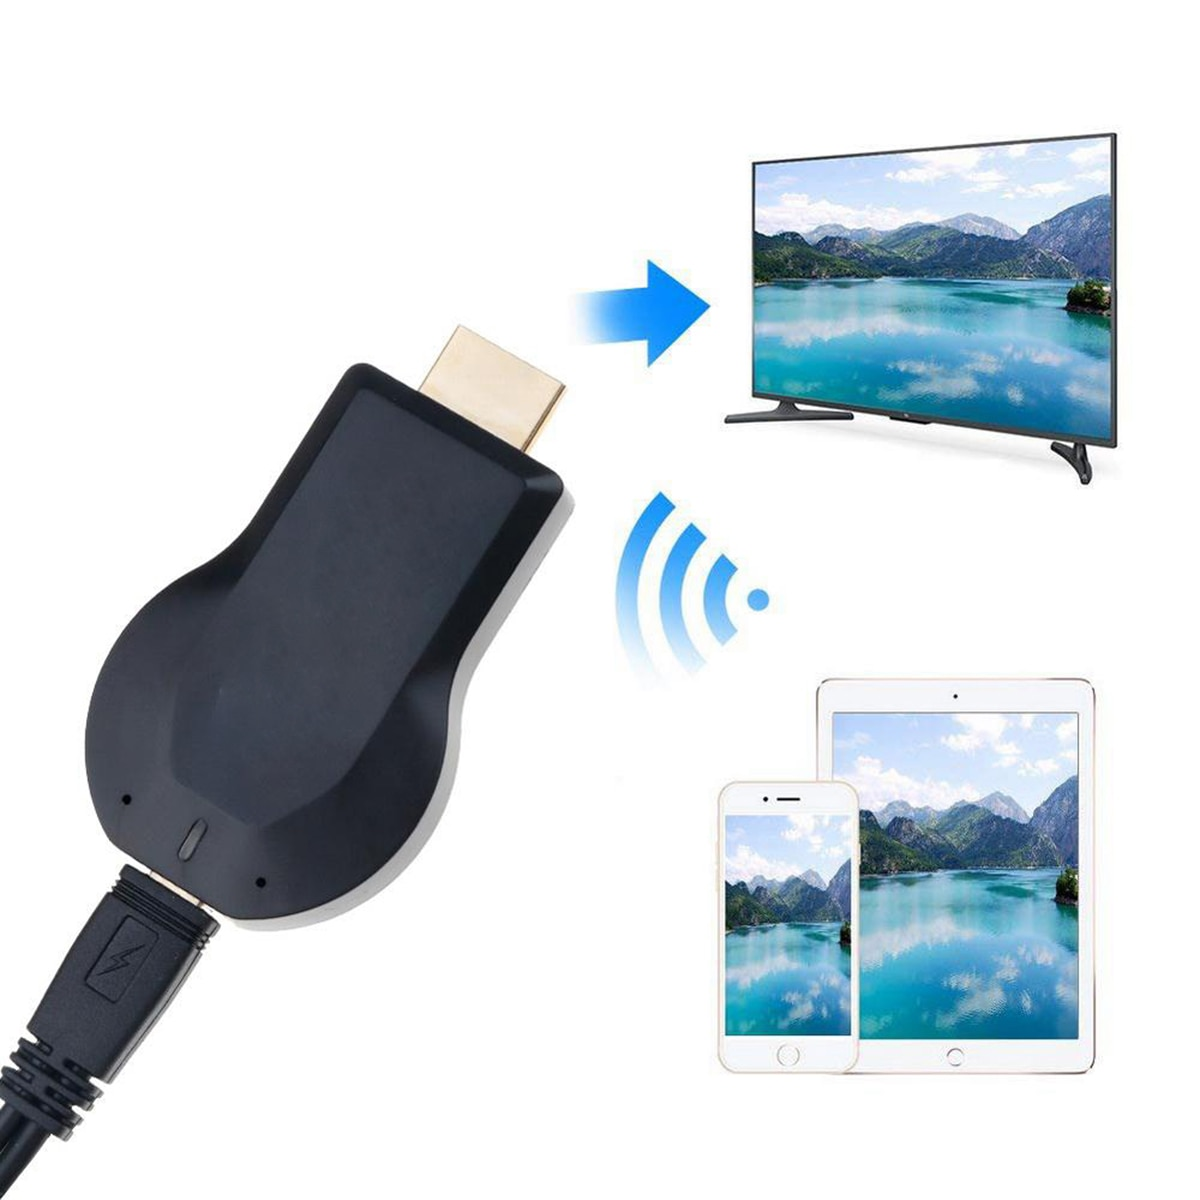 TV Stick Wireless Display Receiver TV Stick WiFi Dongle Screen Mirror TV Sticks 1080P HDMI 5V 2A Wit